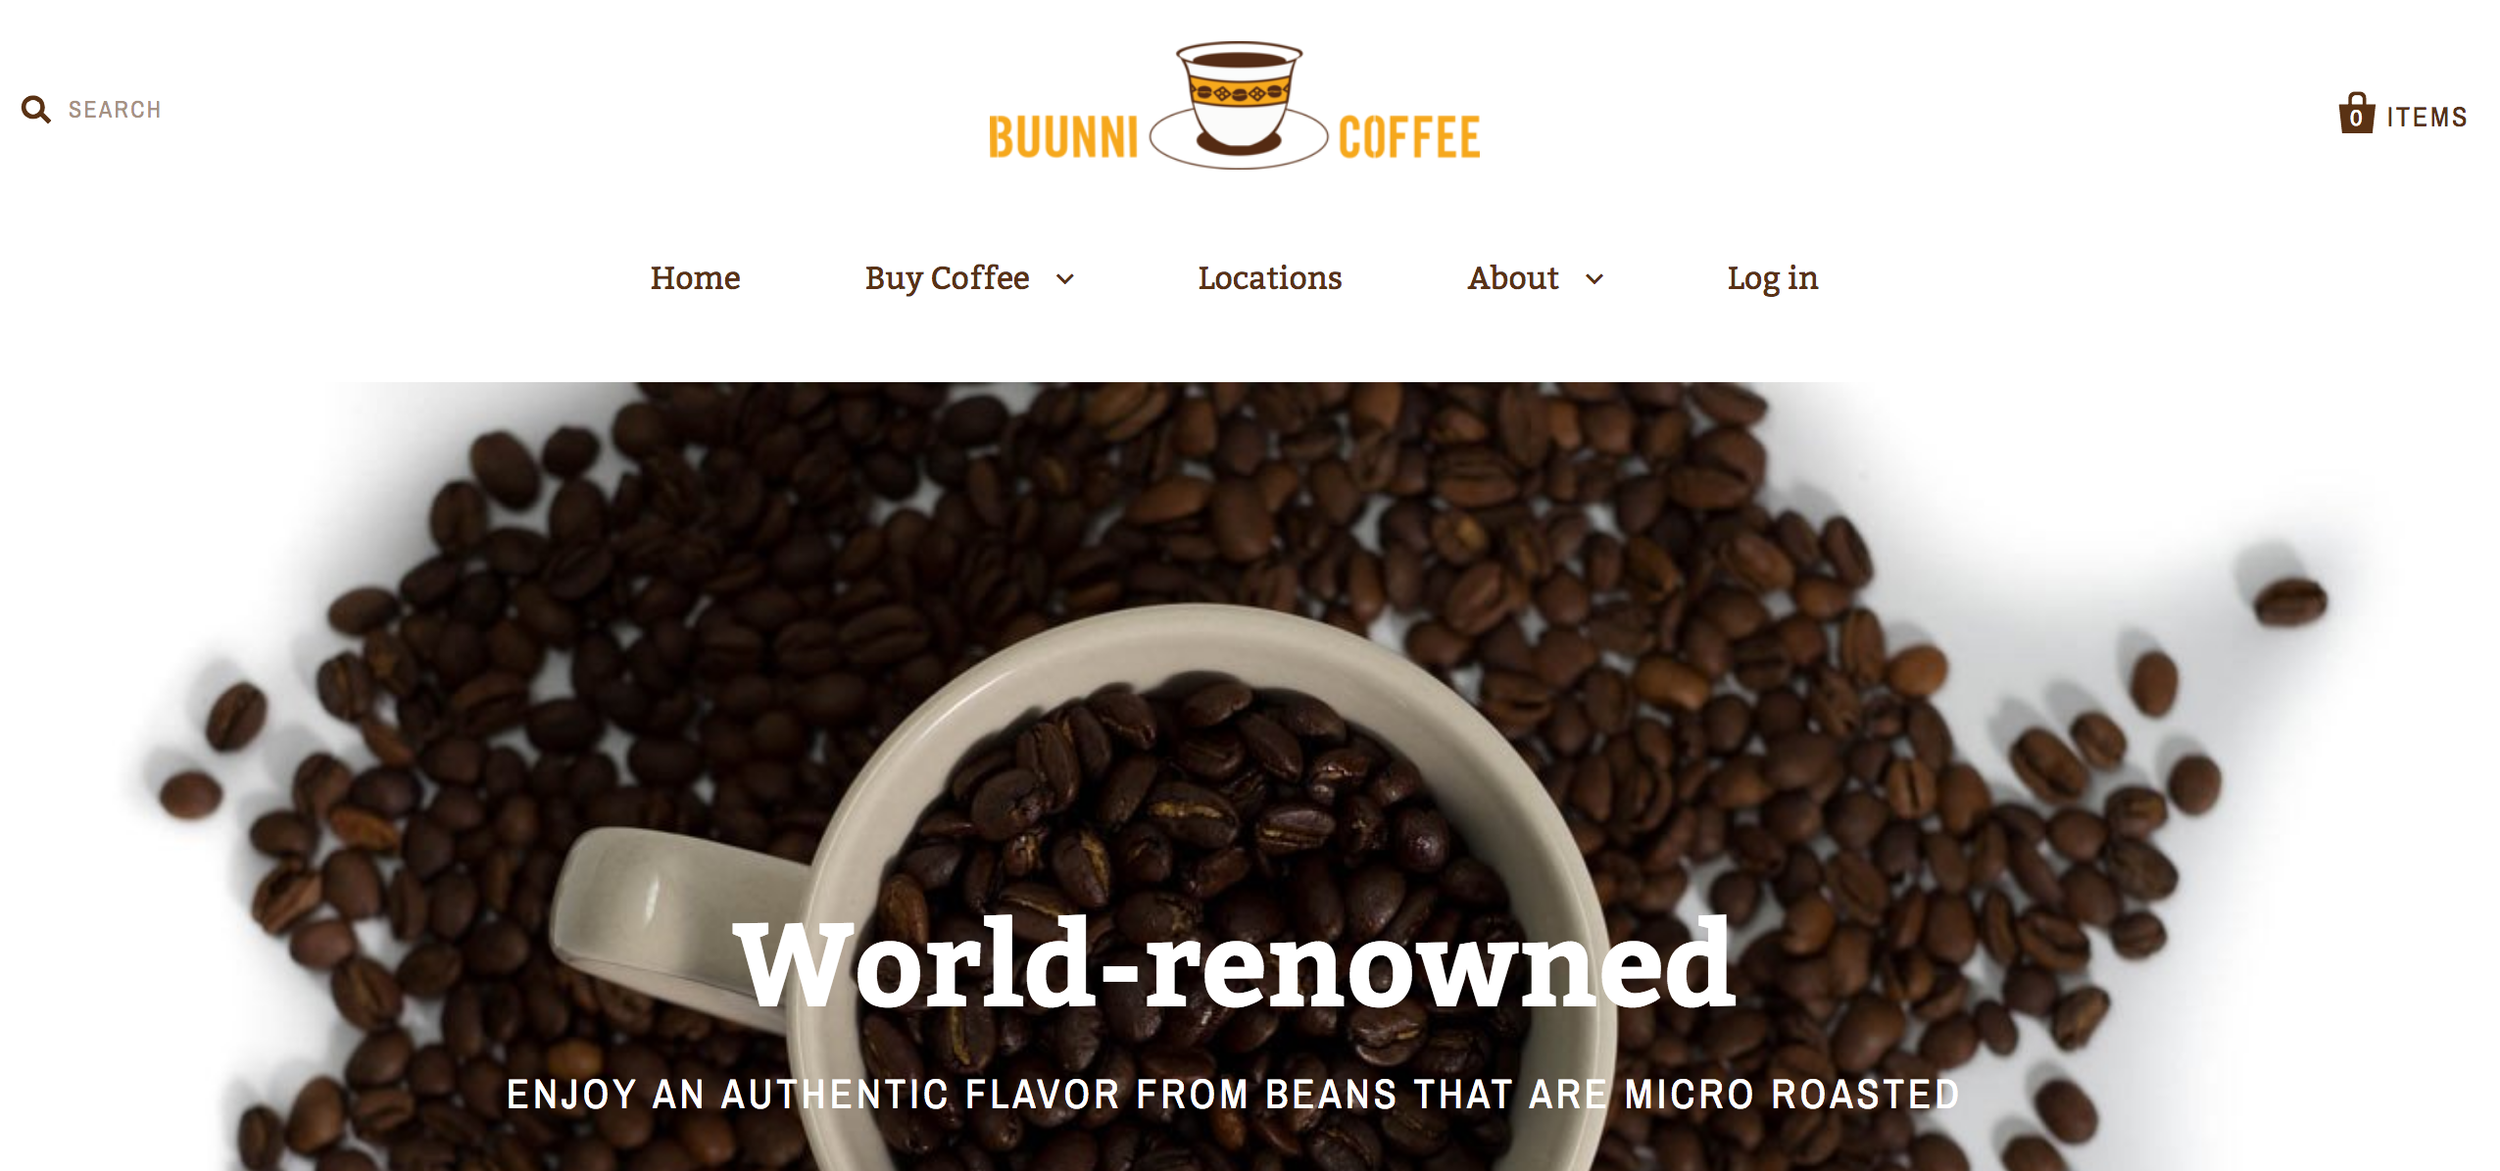 Reworked Logo for Buunni Coffee